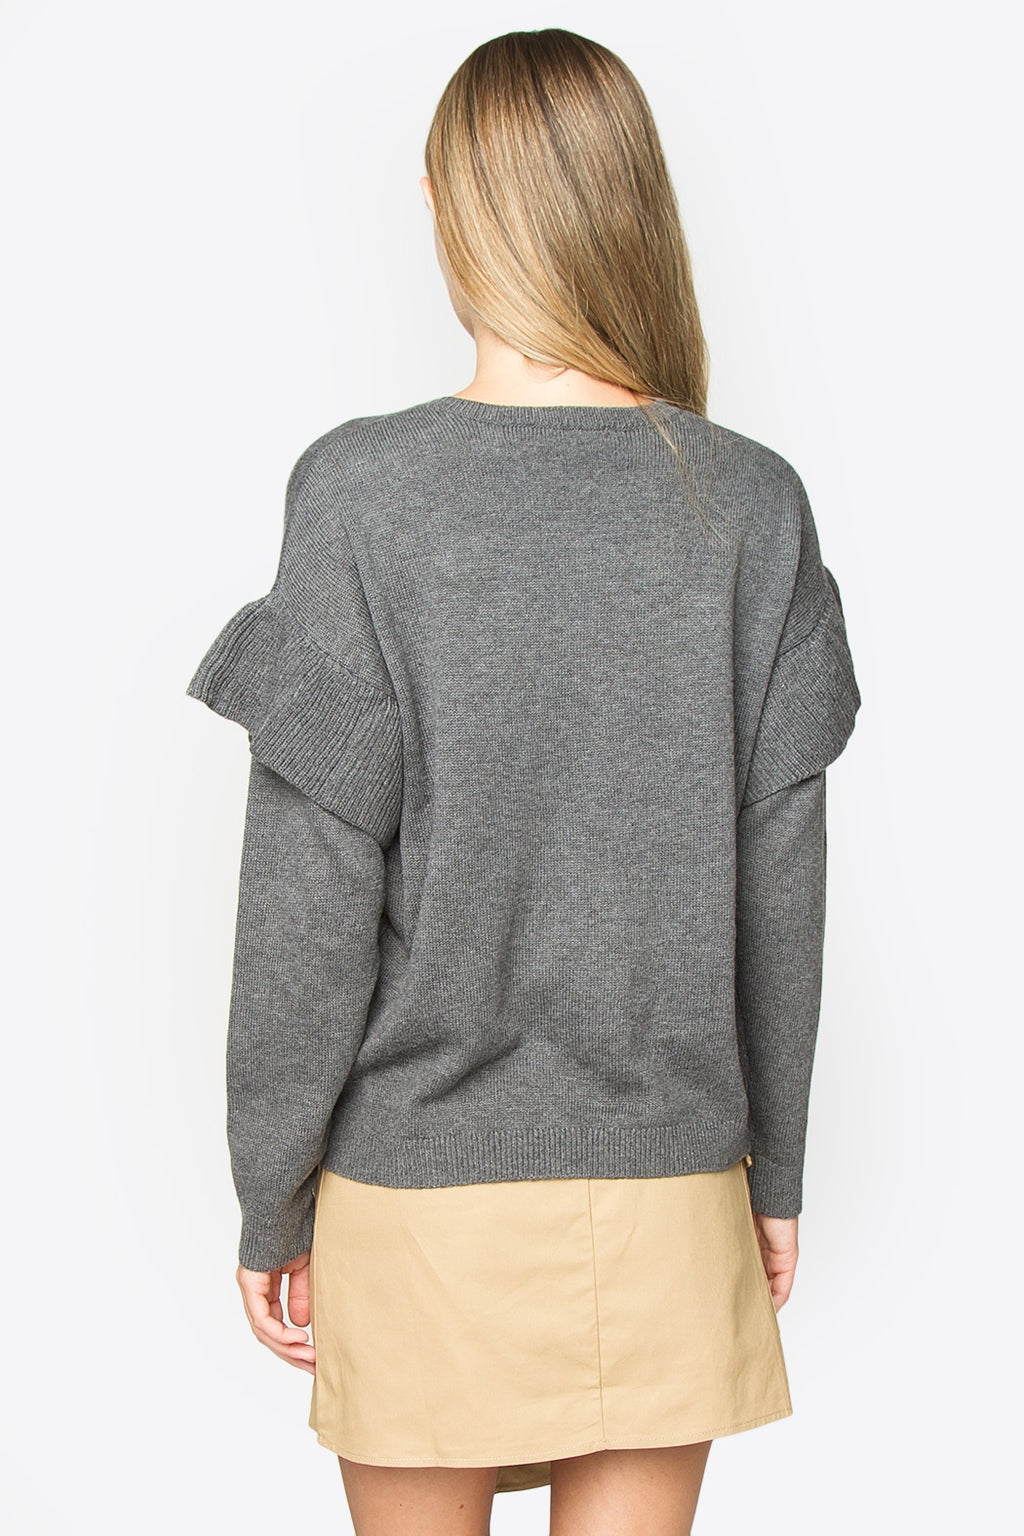 Kayson Oversized Ruffle Sweater - Grey